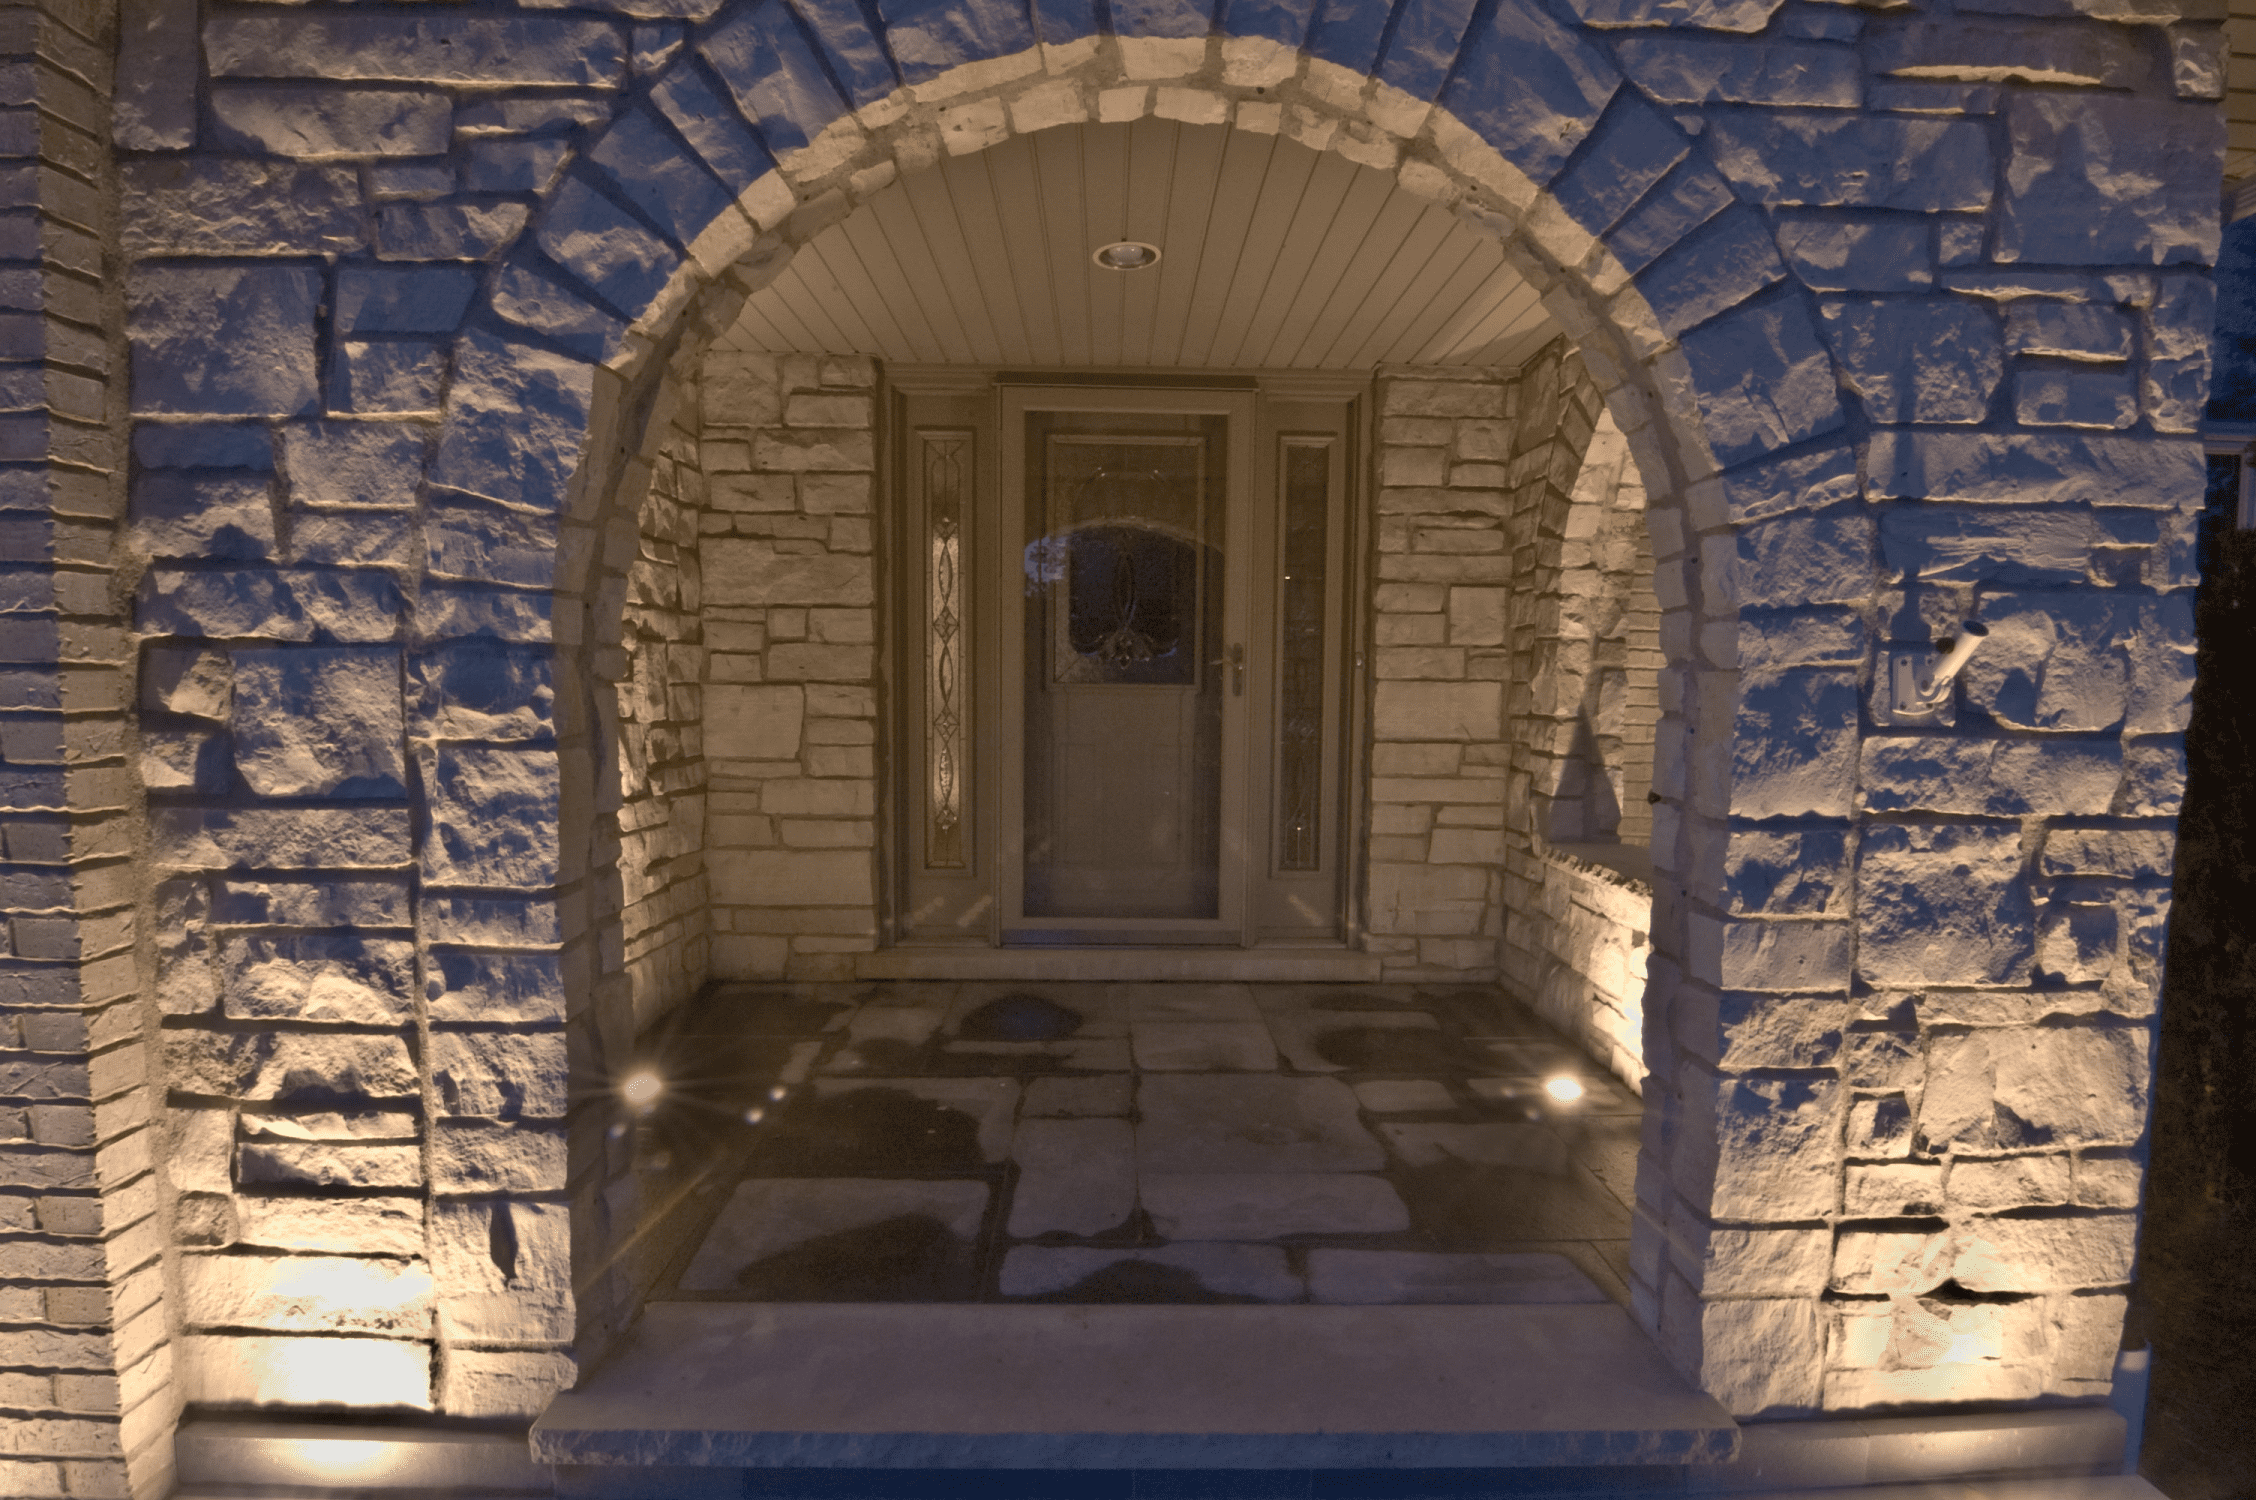 Residential Entryways · ARCHITECTURAL LIGHTING & ARCHITECTURAL LIGHTING - Outdoor Lighting in Chicago IL | Outdoor ... azcodes.com